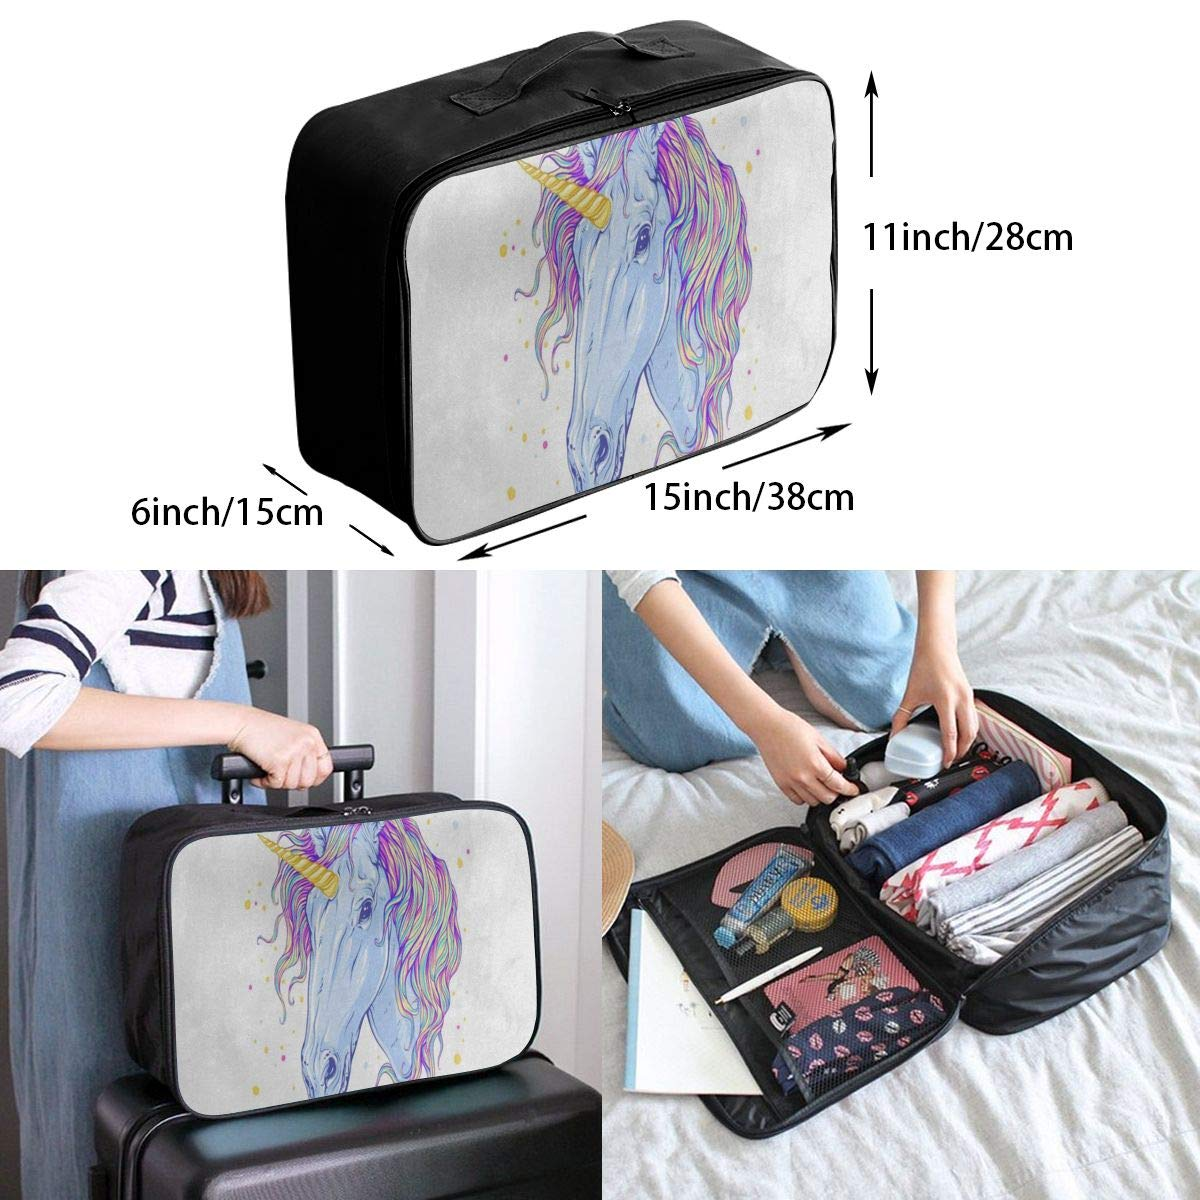 Luggage Bag Travel Duffel Bag Waterproof Watercolor Animal Unicorn Lightweight Large Capacity Portable Storage Bag